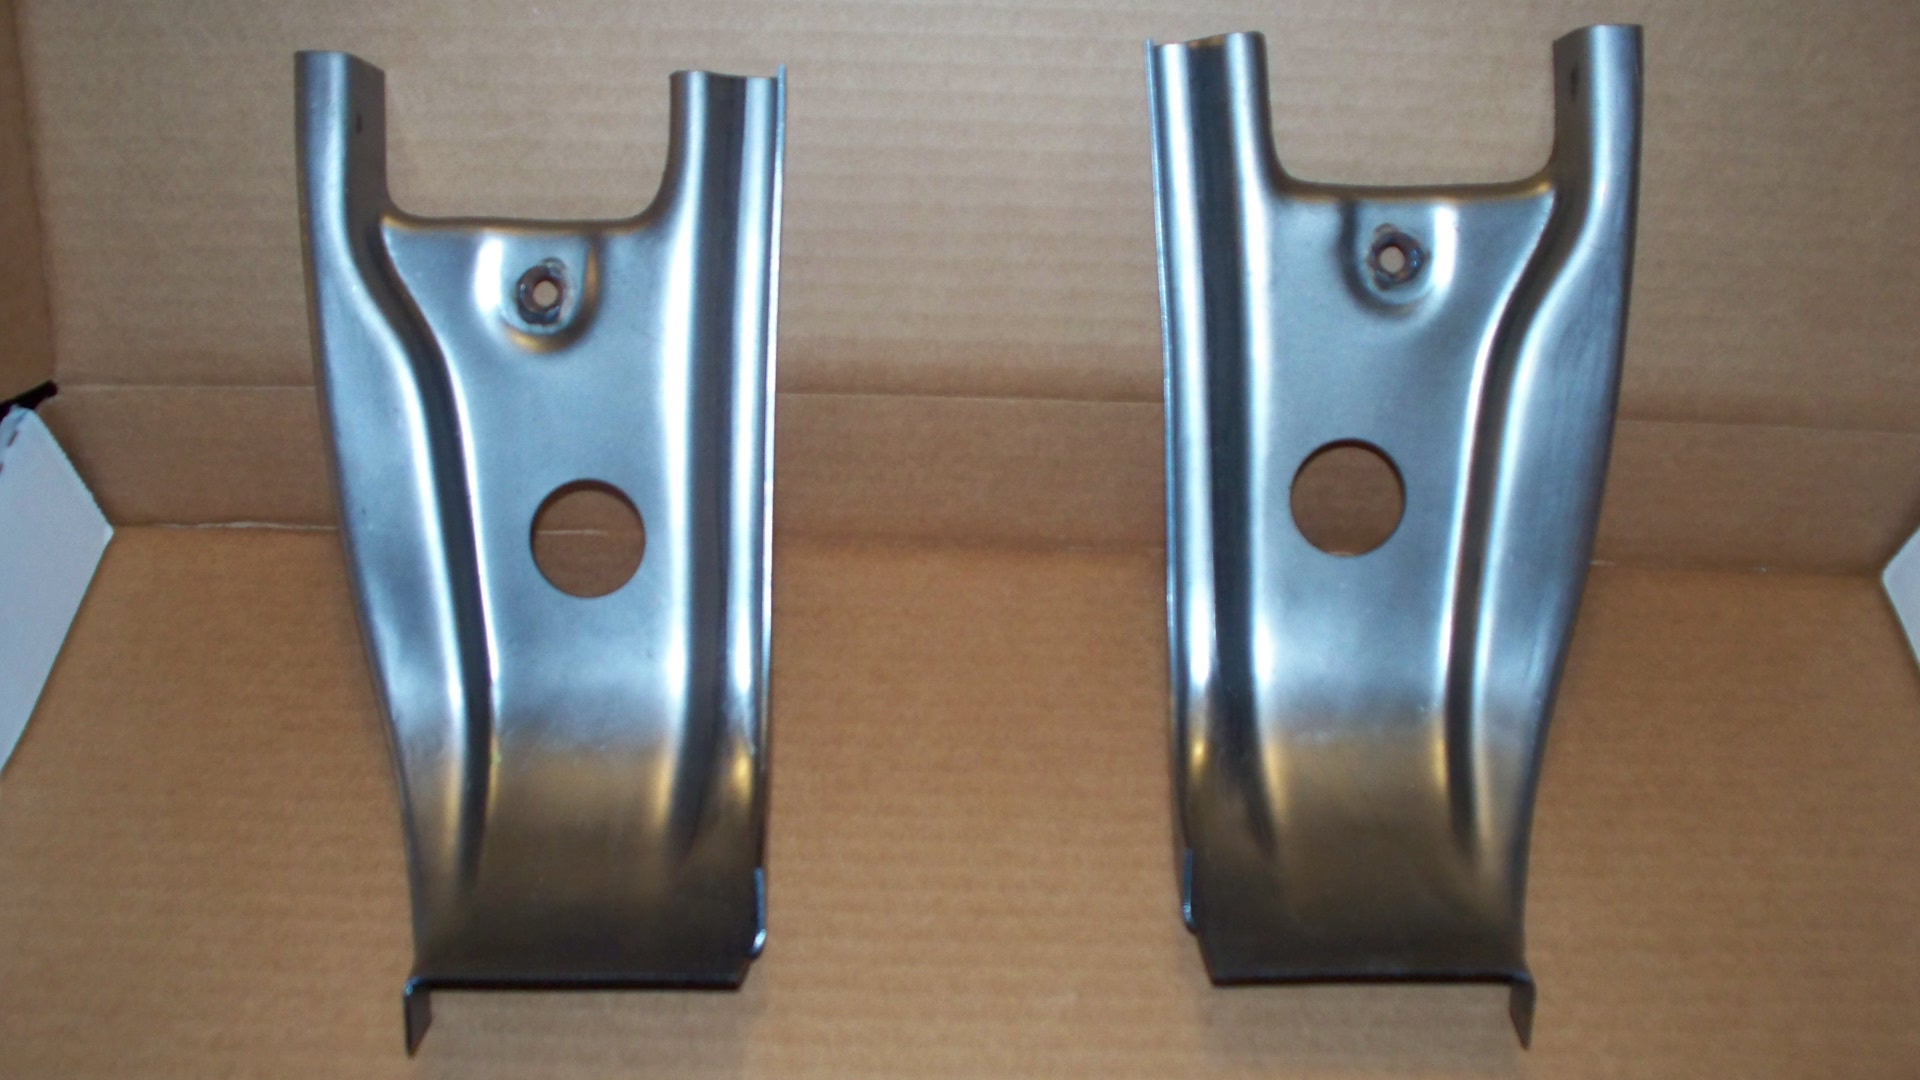 lowwr door hnge pillars 61/66 All F-Series Trucks